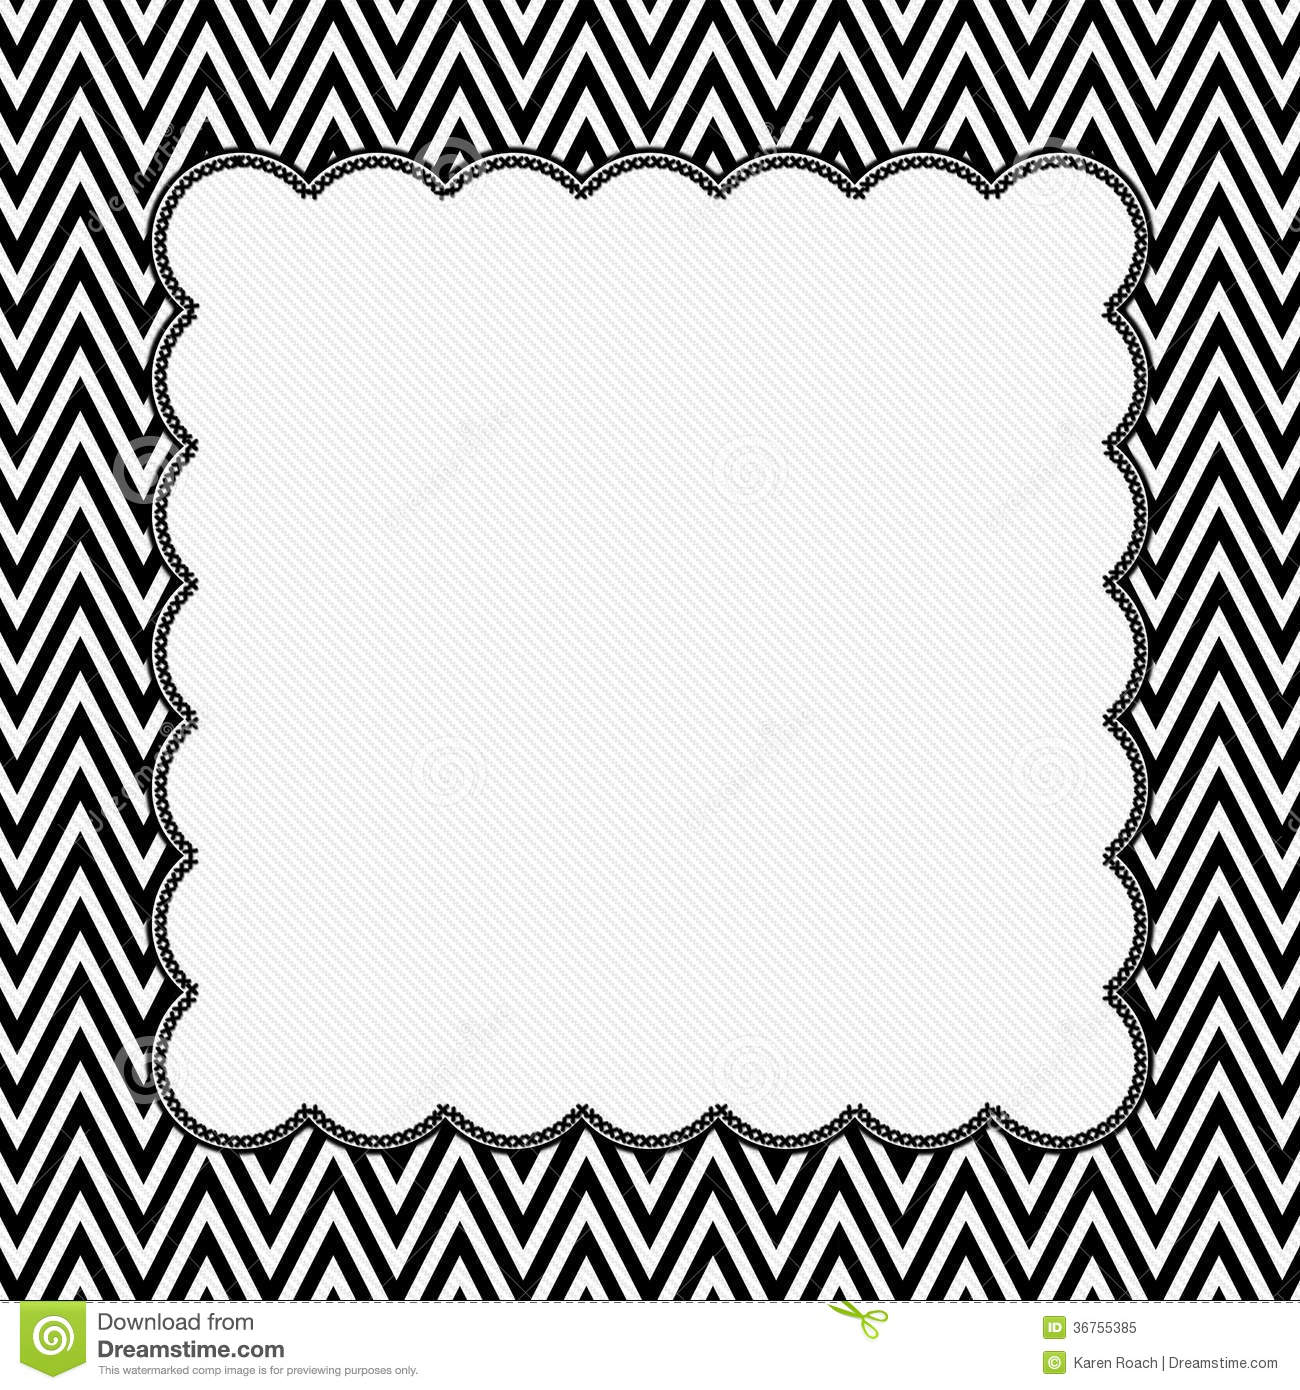 cadre noir et blanc de chevron avec le fond de broderie image stock image du mat riau. Black Bedroom Furniture Sets. Home Design Ideas